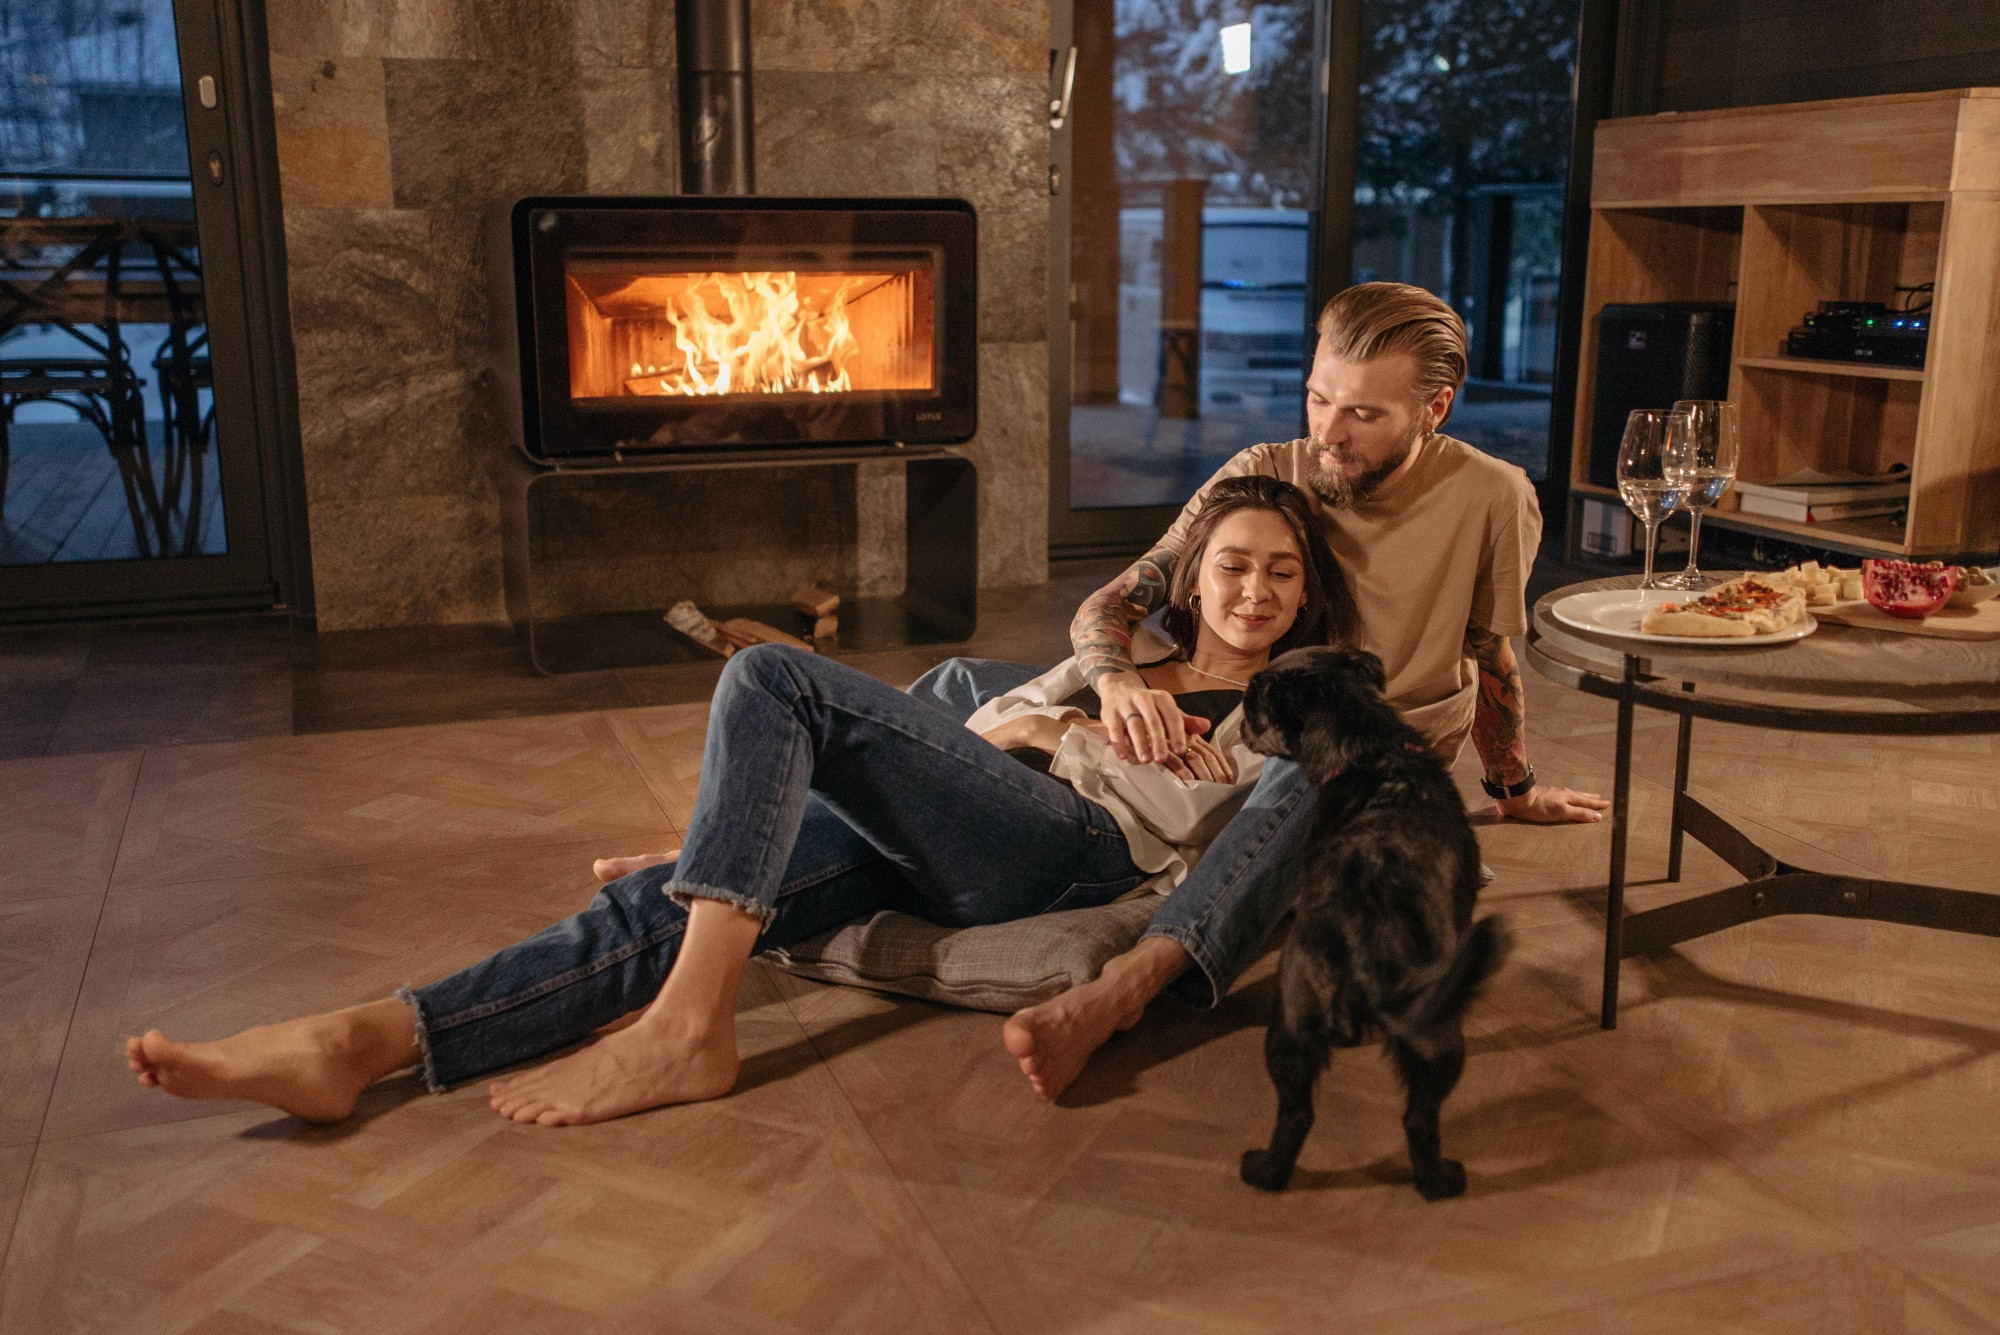 A couple with their dog sitting by the fireplace during a snowy late evening